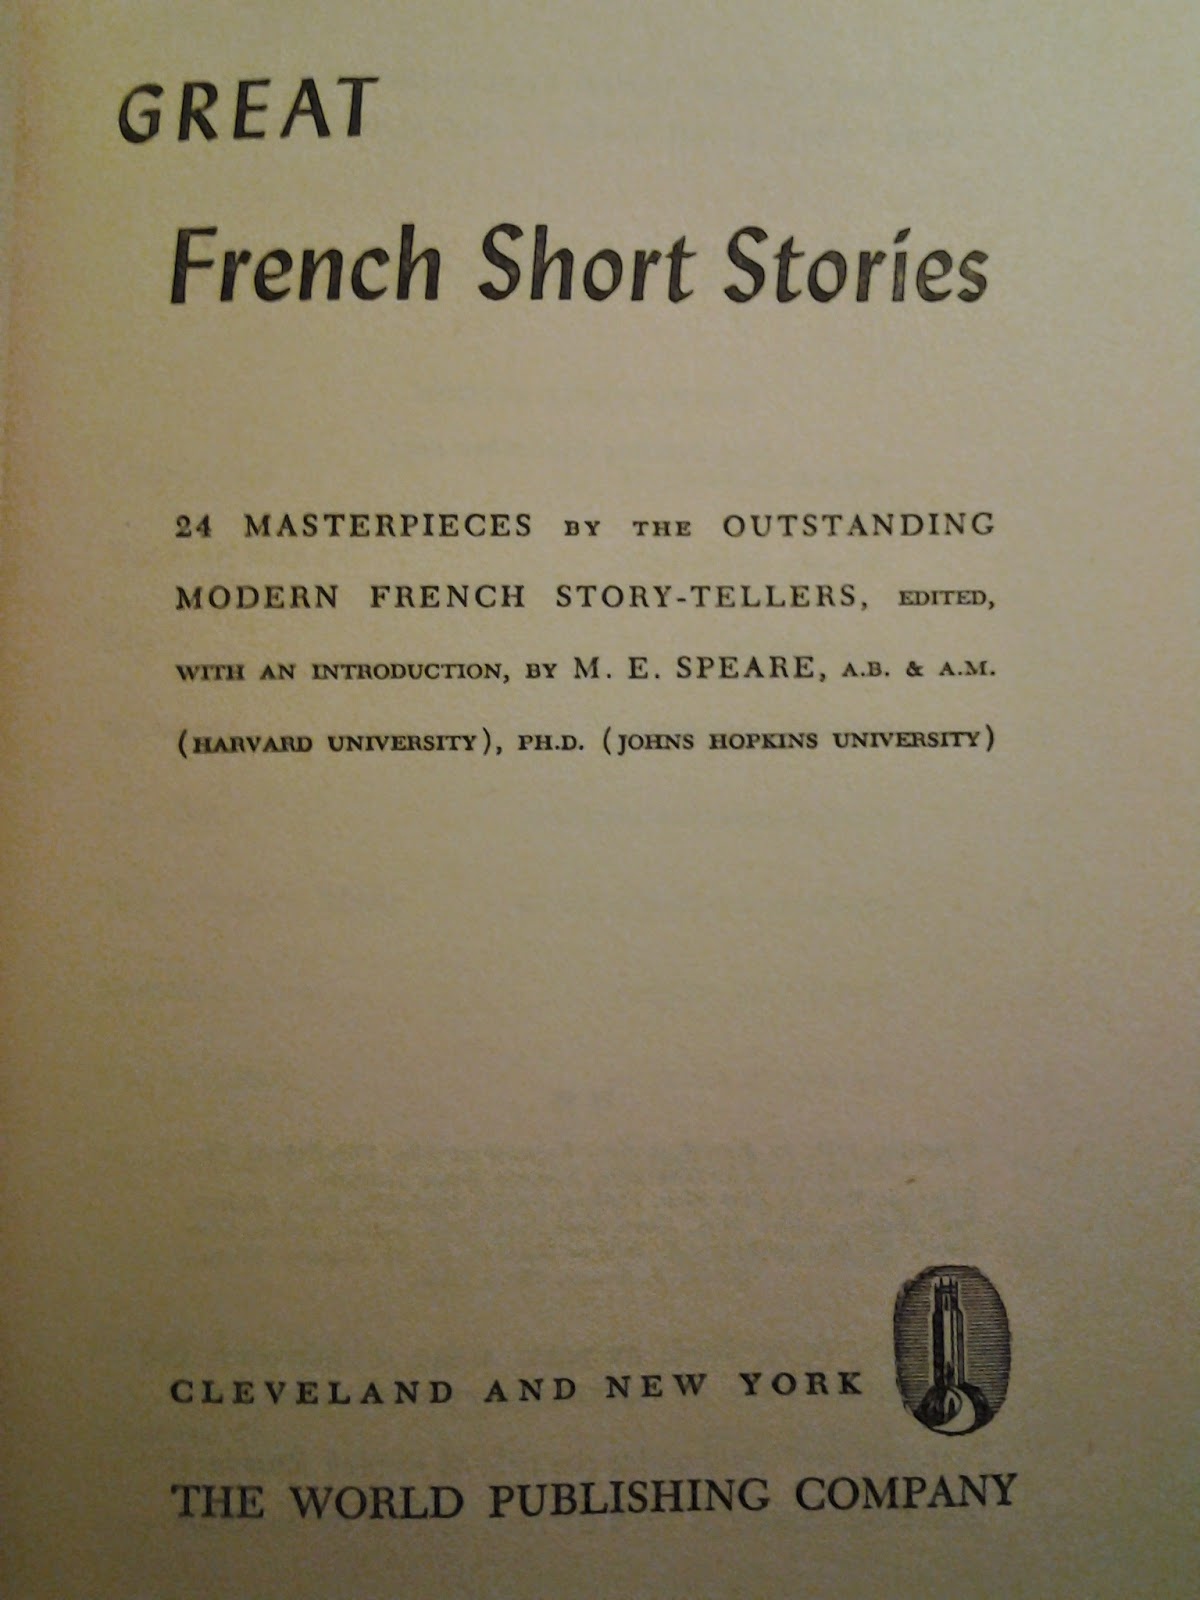 Great French Short Stories edited by M. E. Speare.  The World Publishing Company, 1943